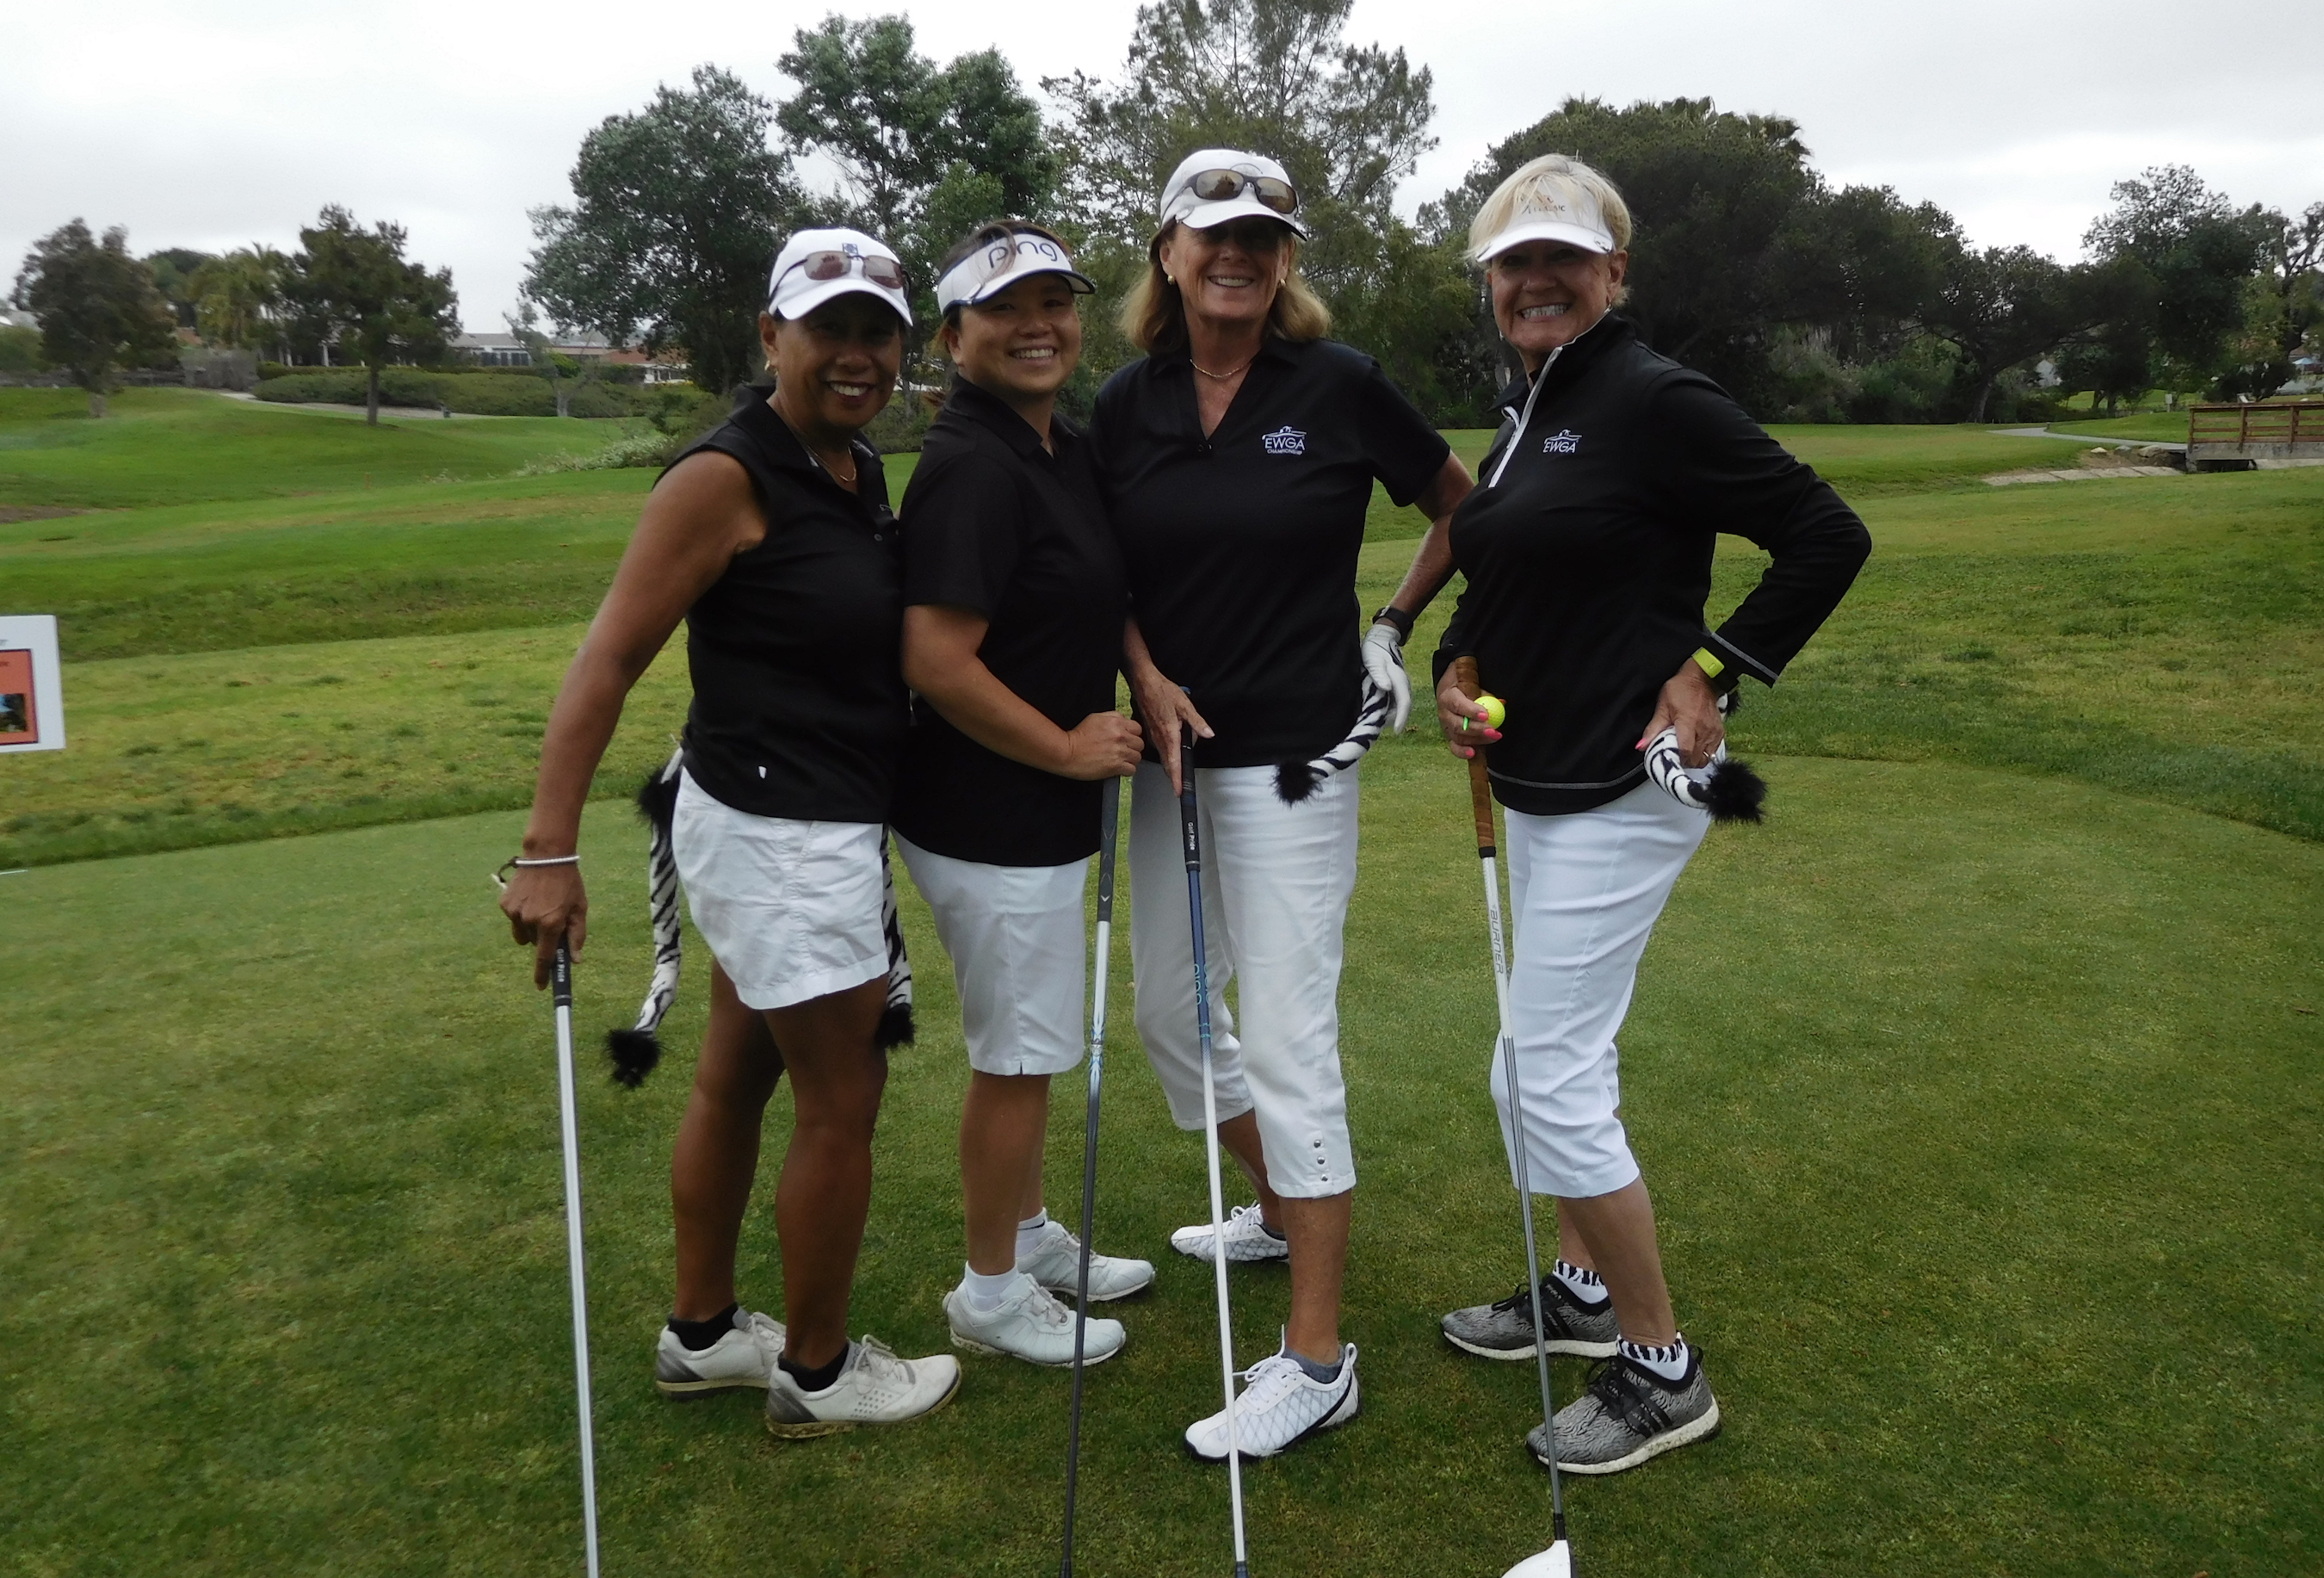 Annette Hirt, Mindy Sam Davis, Cretia Hadley and Chris Shorkey have fun with zebra outfits